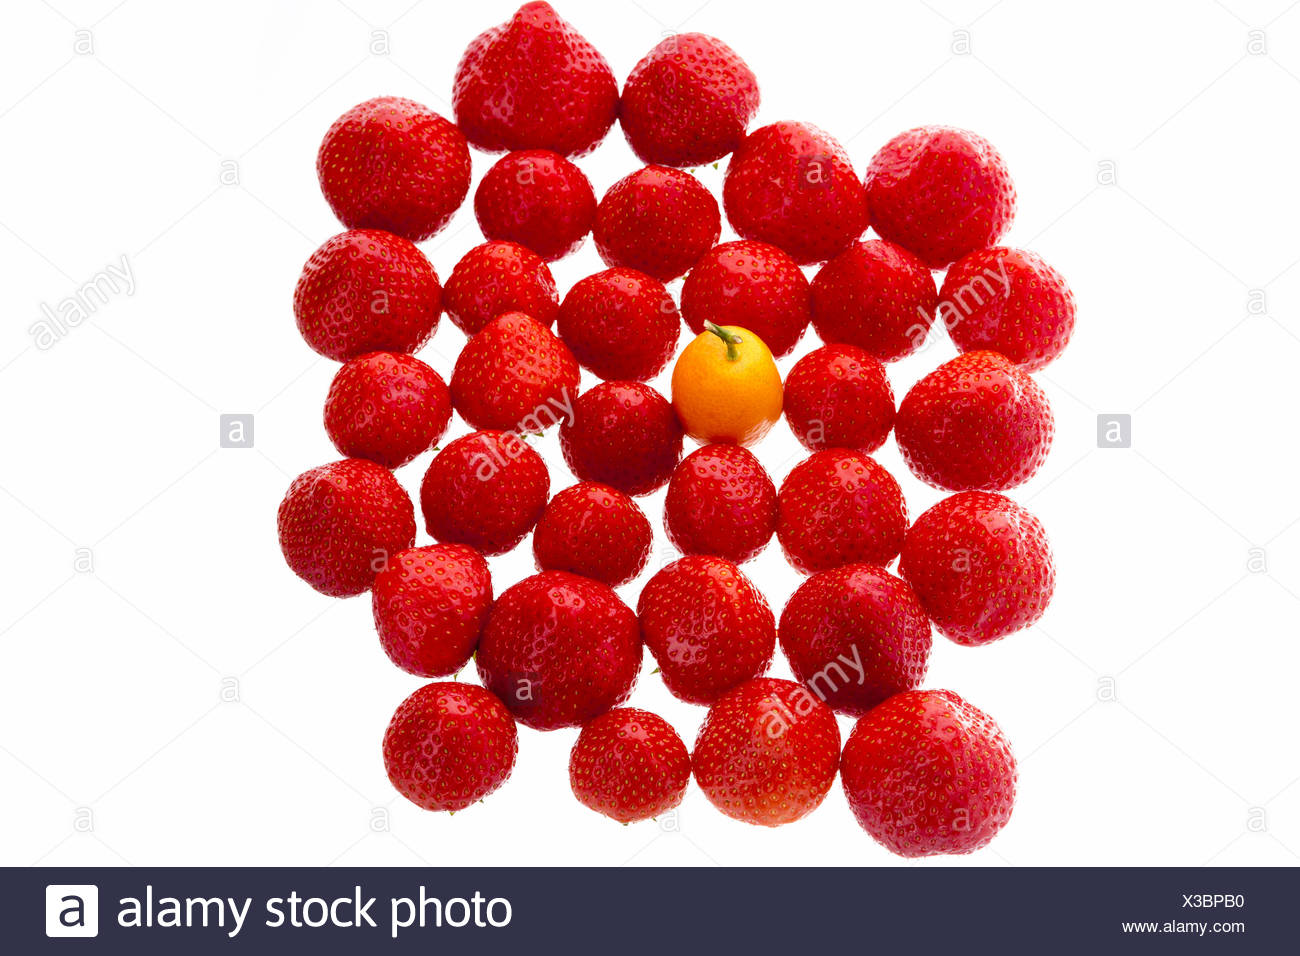 Single Kumquat In A Crowd Of Strawberry Fruits - Stock Image